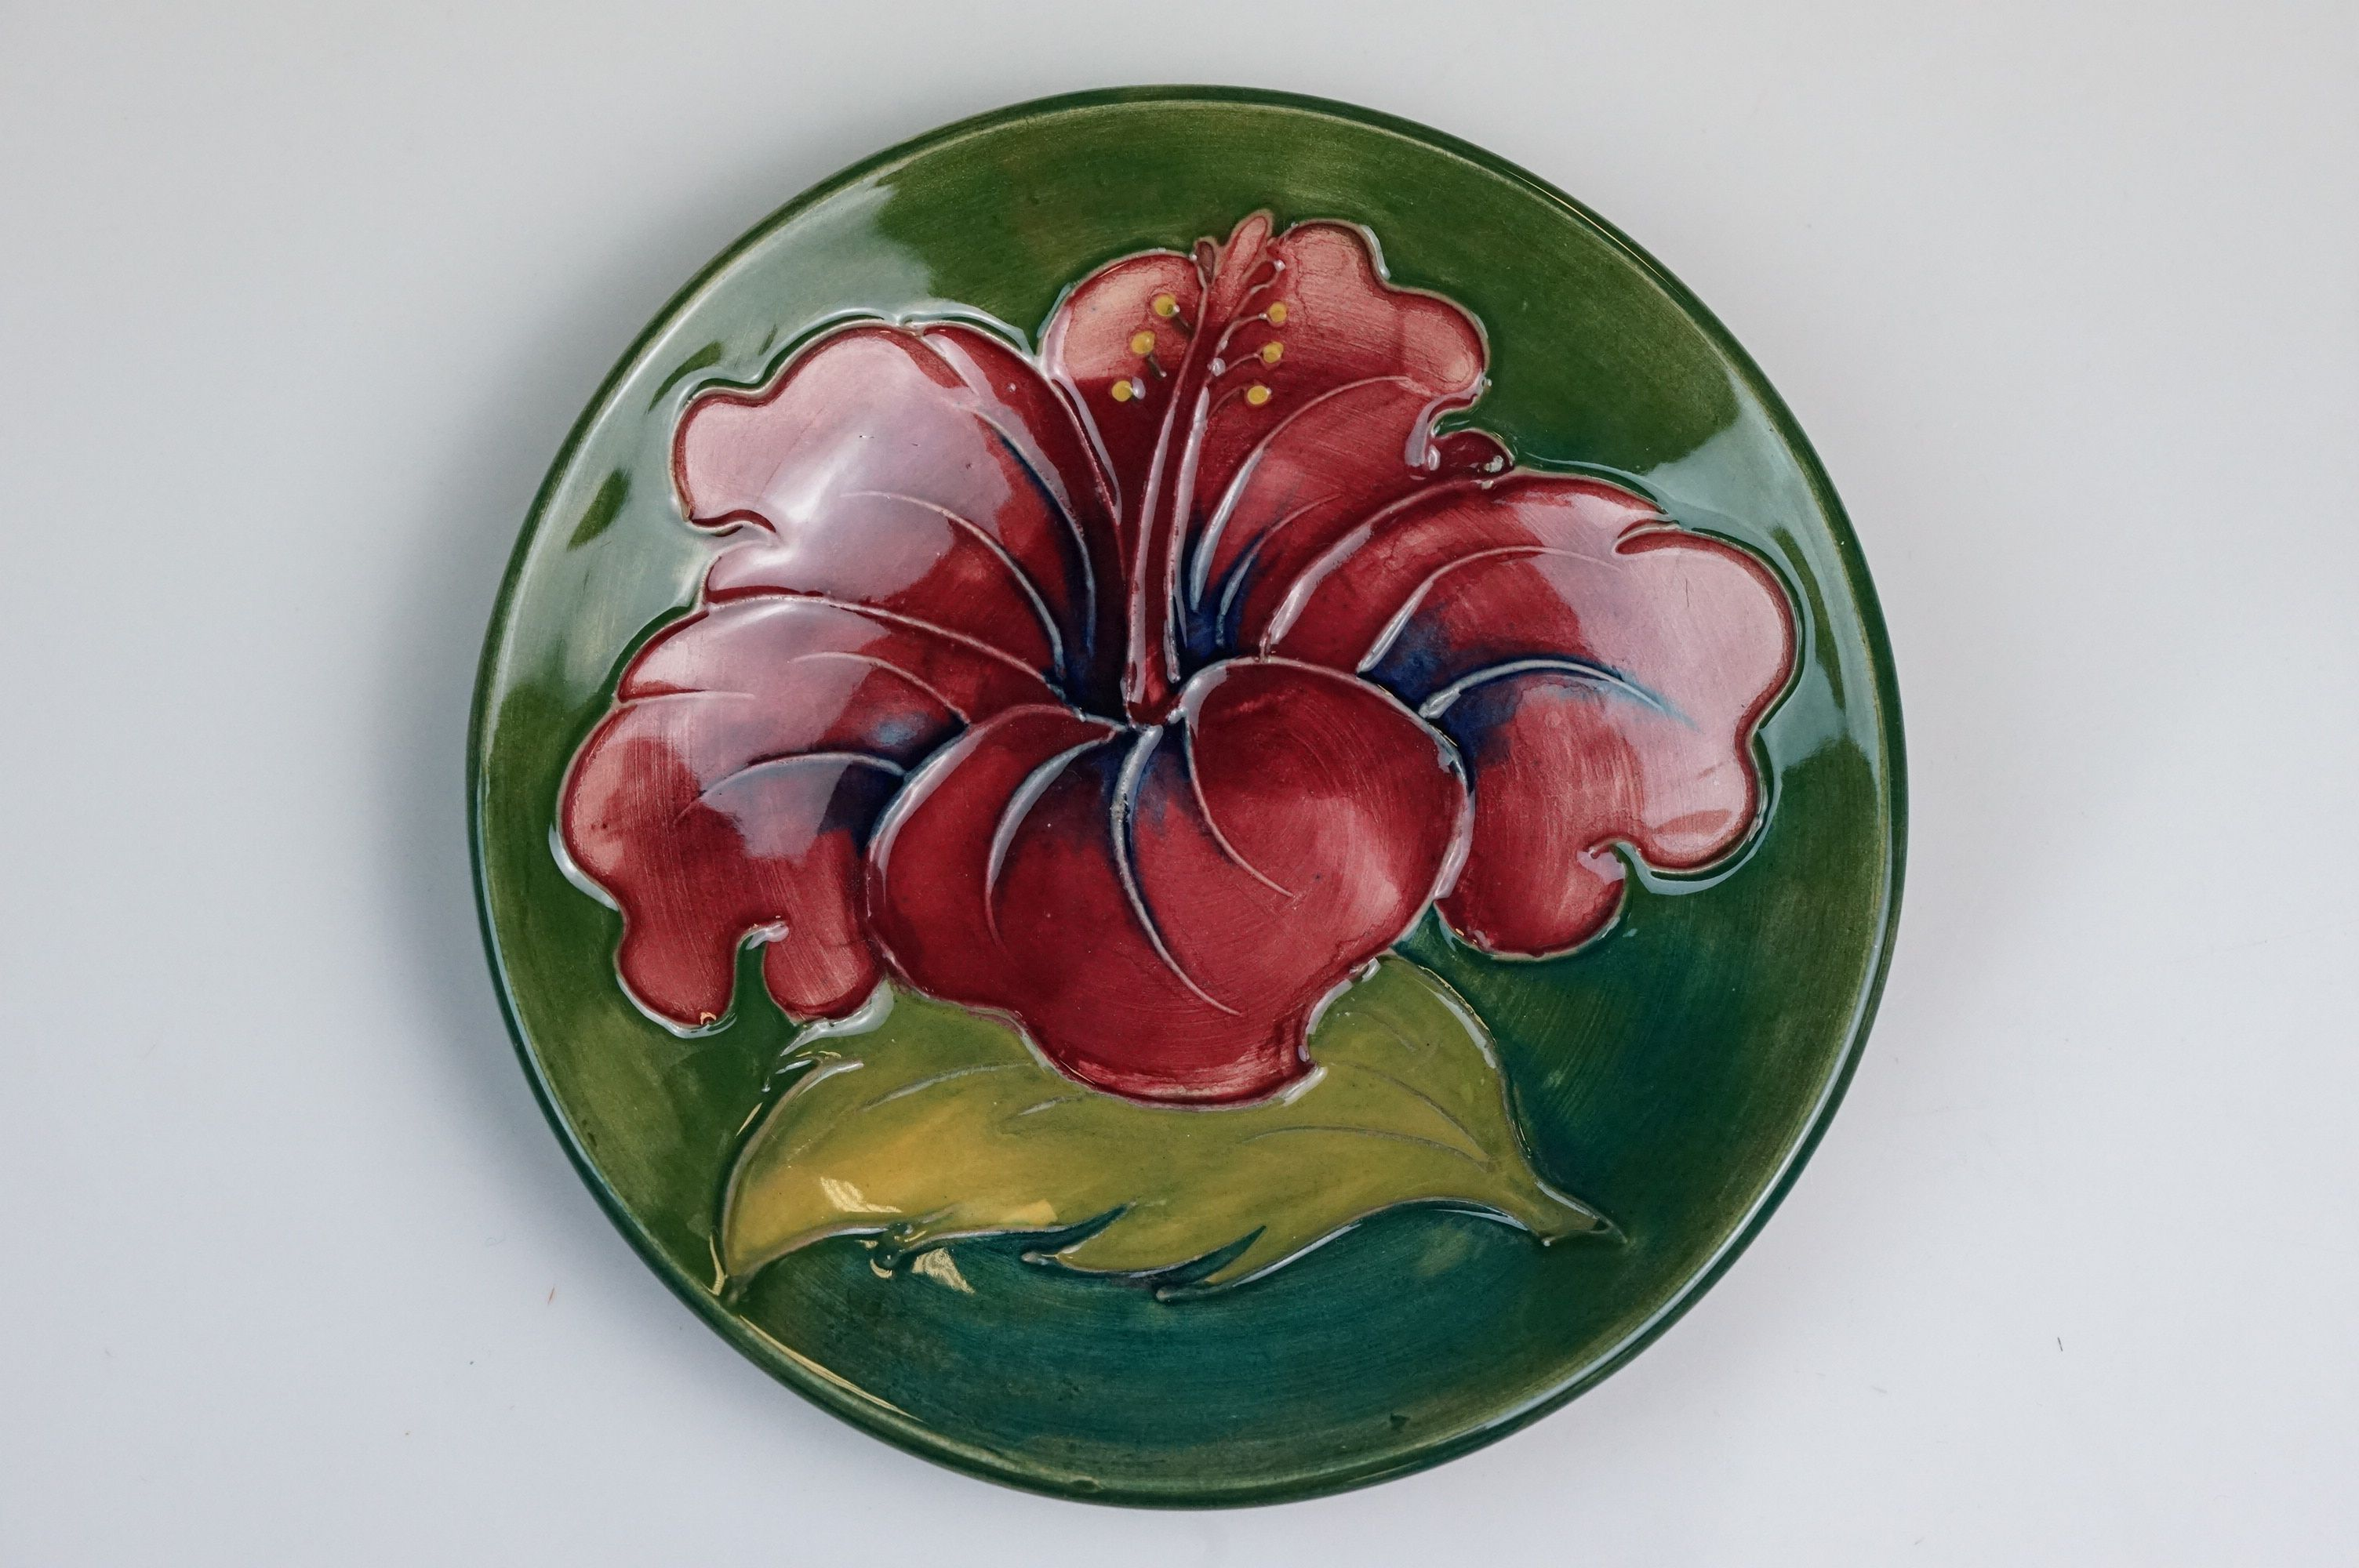 Moorcroft hibiscus flower pin dish, green ground with red flower, diameter approx 11.5cm - Image 2 of 5